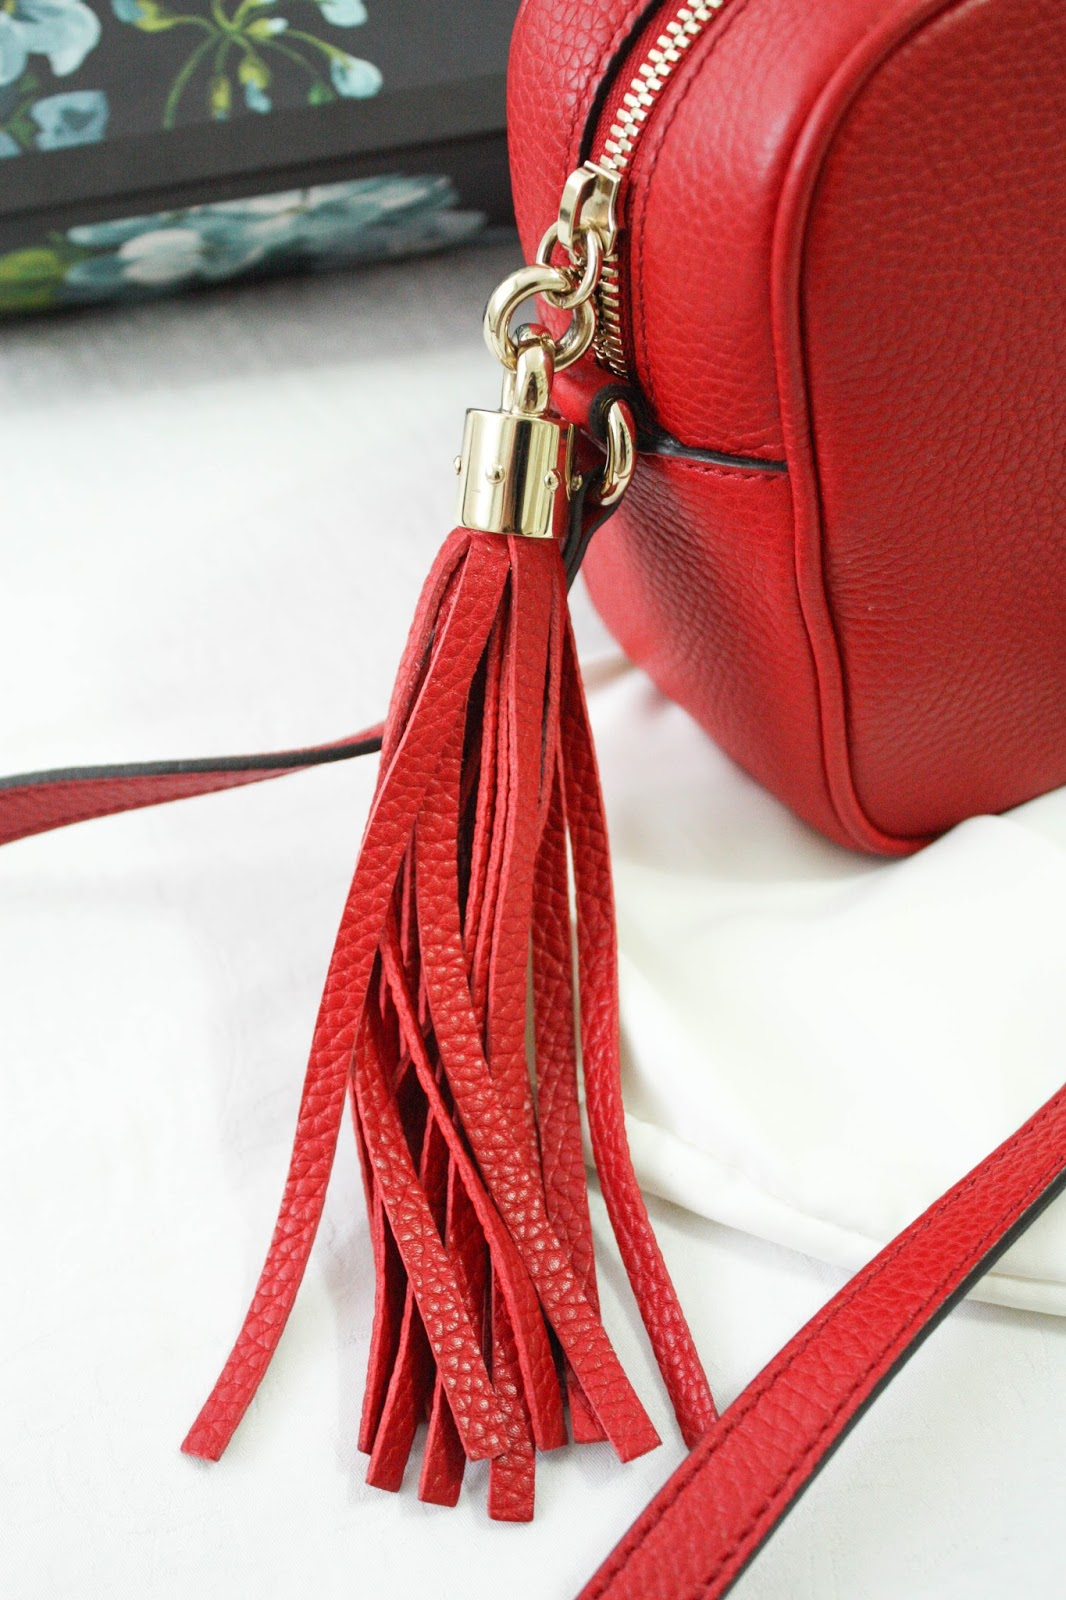 9743ed9bbe4ad7 The bag's handle is a tassle, and it is SO cute. The hardware is gold, and  look at the details on the handle. It's so beautiful. This bag is so  beautifully ...